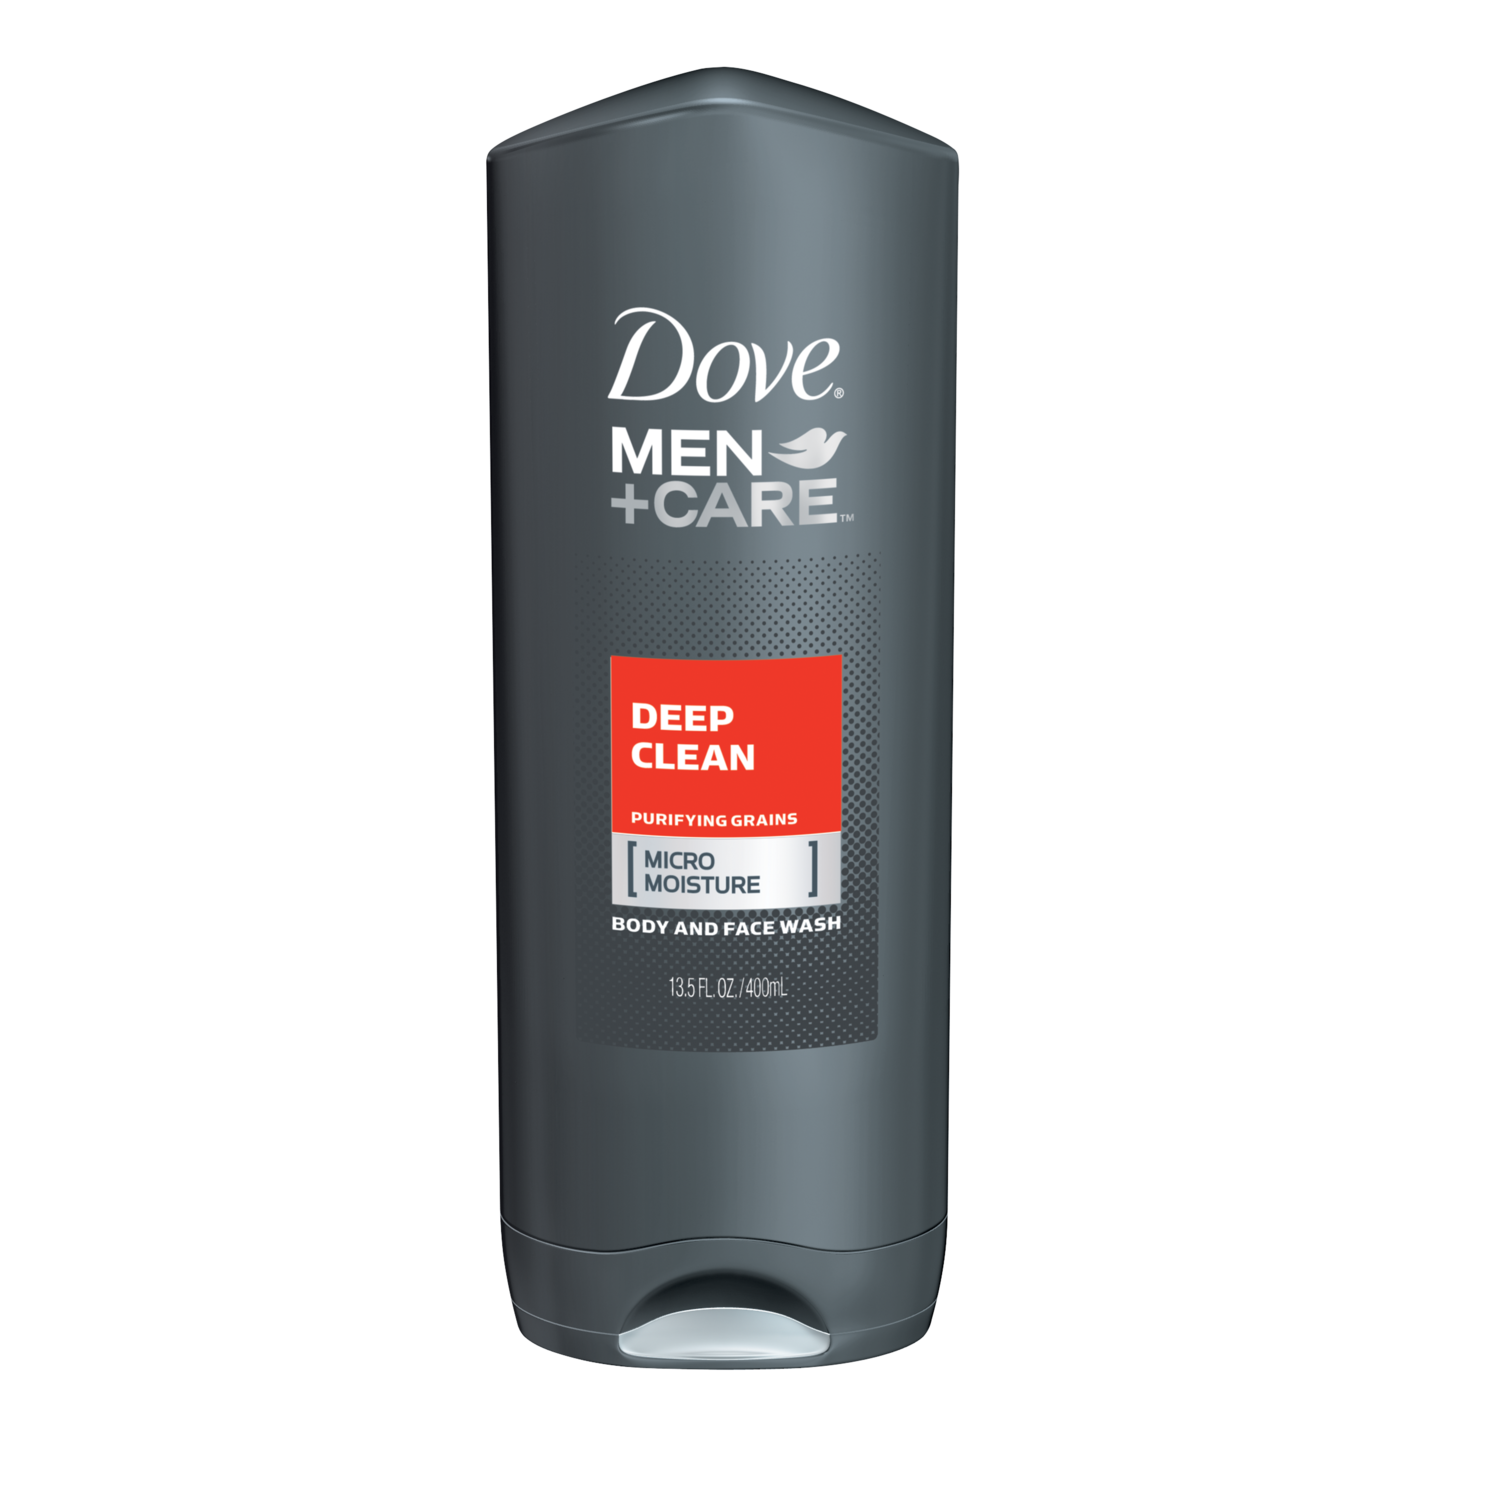 High Quality Dove Men+Care Deep Clean Body And Face Wash